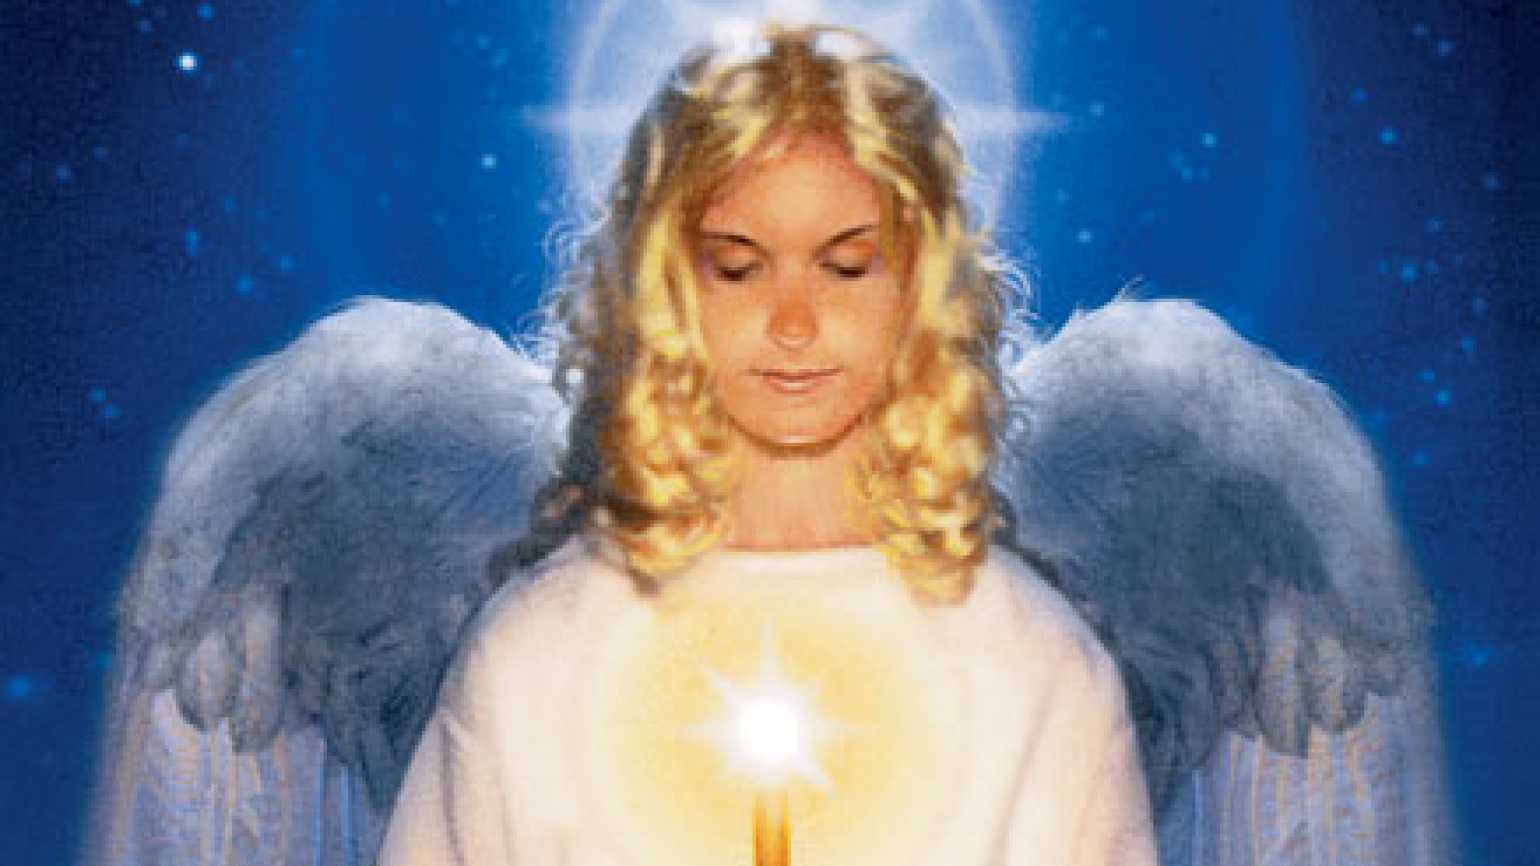 Illustration of an angel with a candle